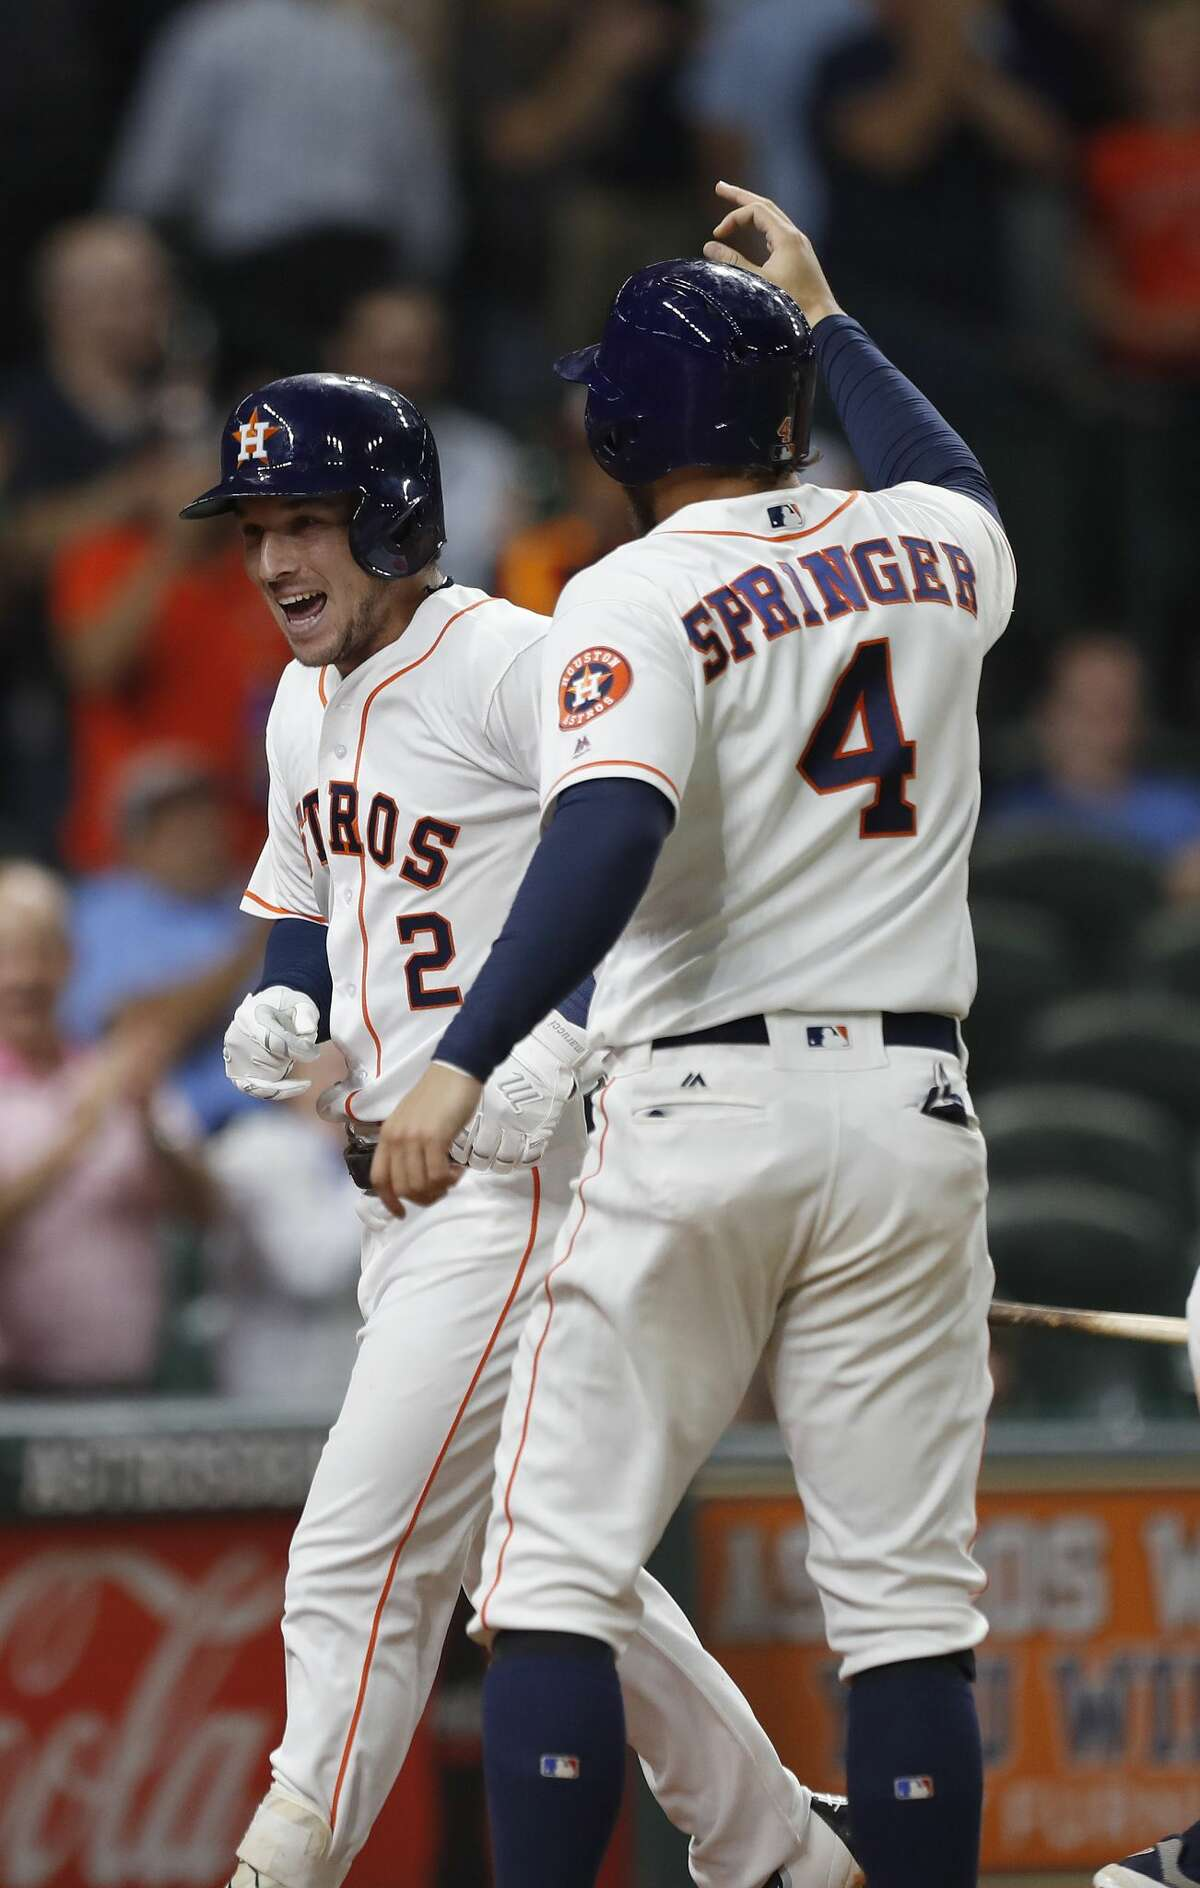 Houston Astros Alex Bregman (2) celebrates his three-run home run with George Springer (4) in the eighth inning of an MLB baseball game at Minute Maid Park, Wednesday, Aug. 23, 2017, in Houston. ( Karen Warren / Houston Chronicle )